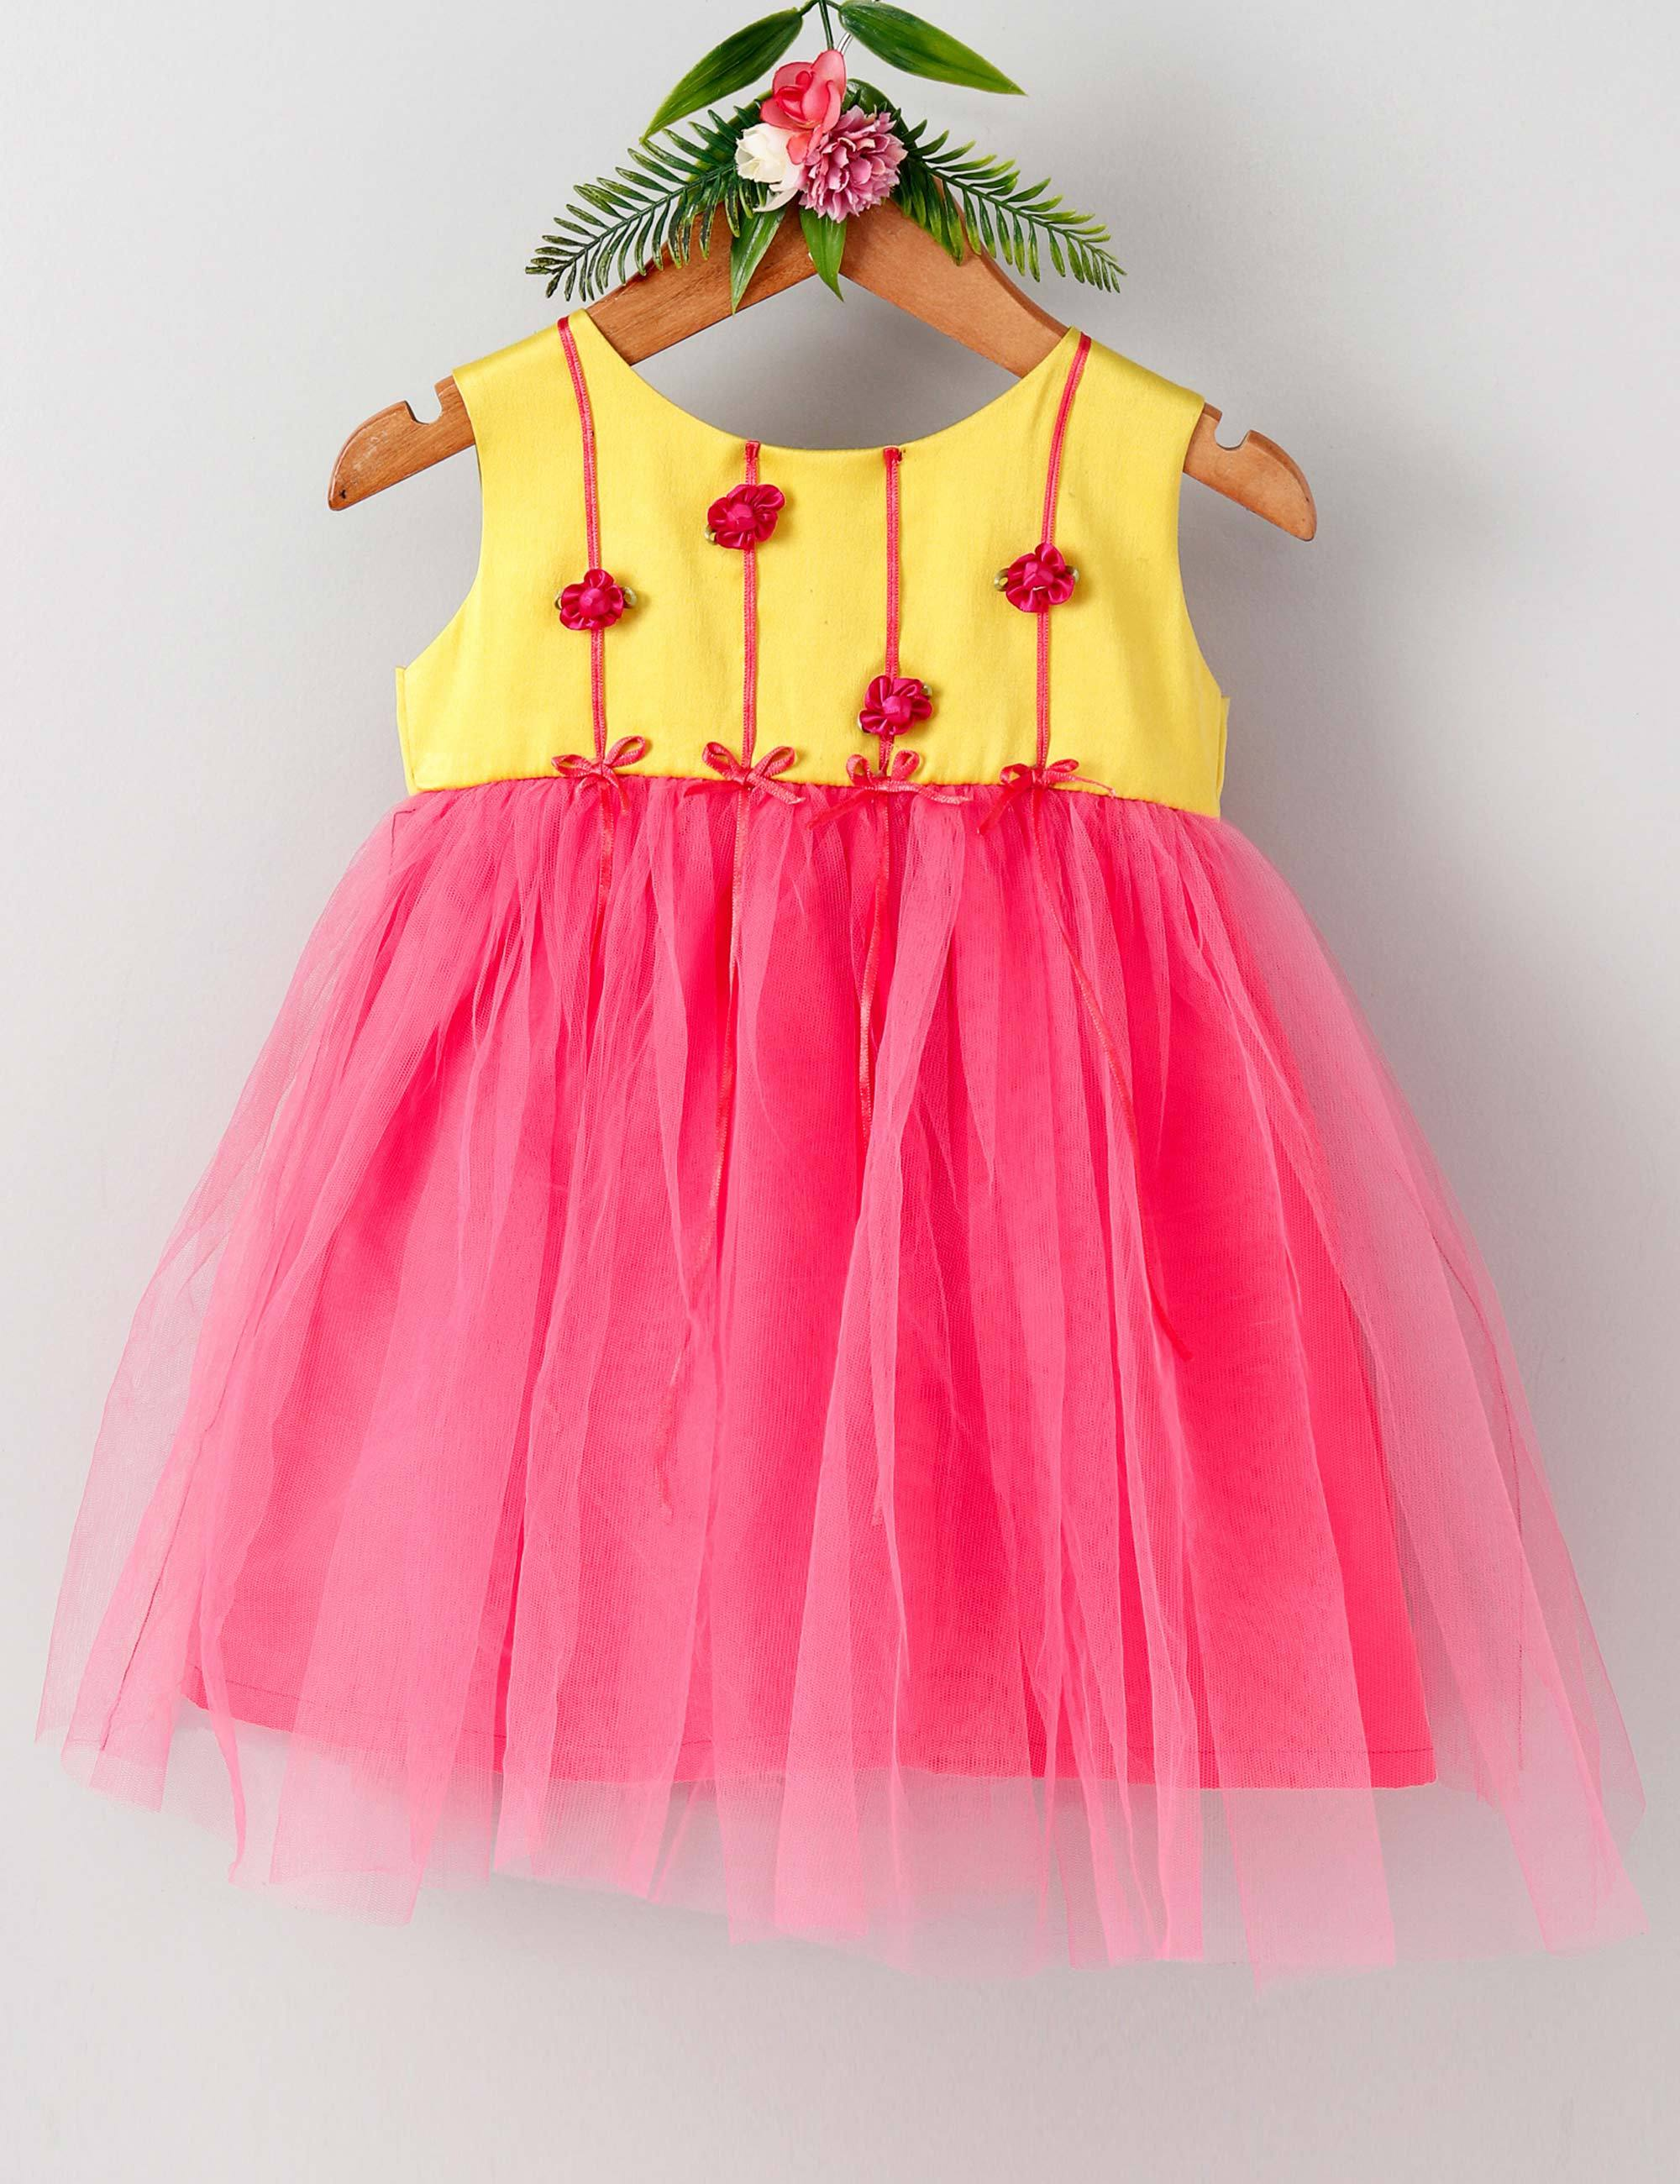 Rose garden sleeveless baby party frock-Yellow and Dark Pink